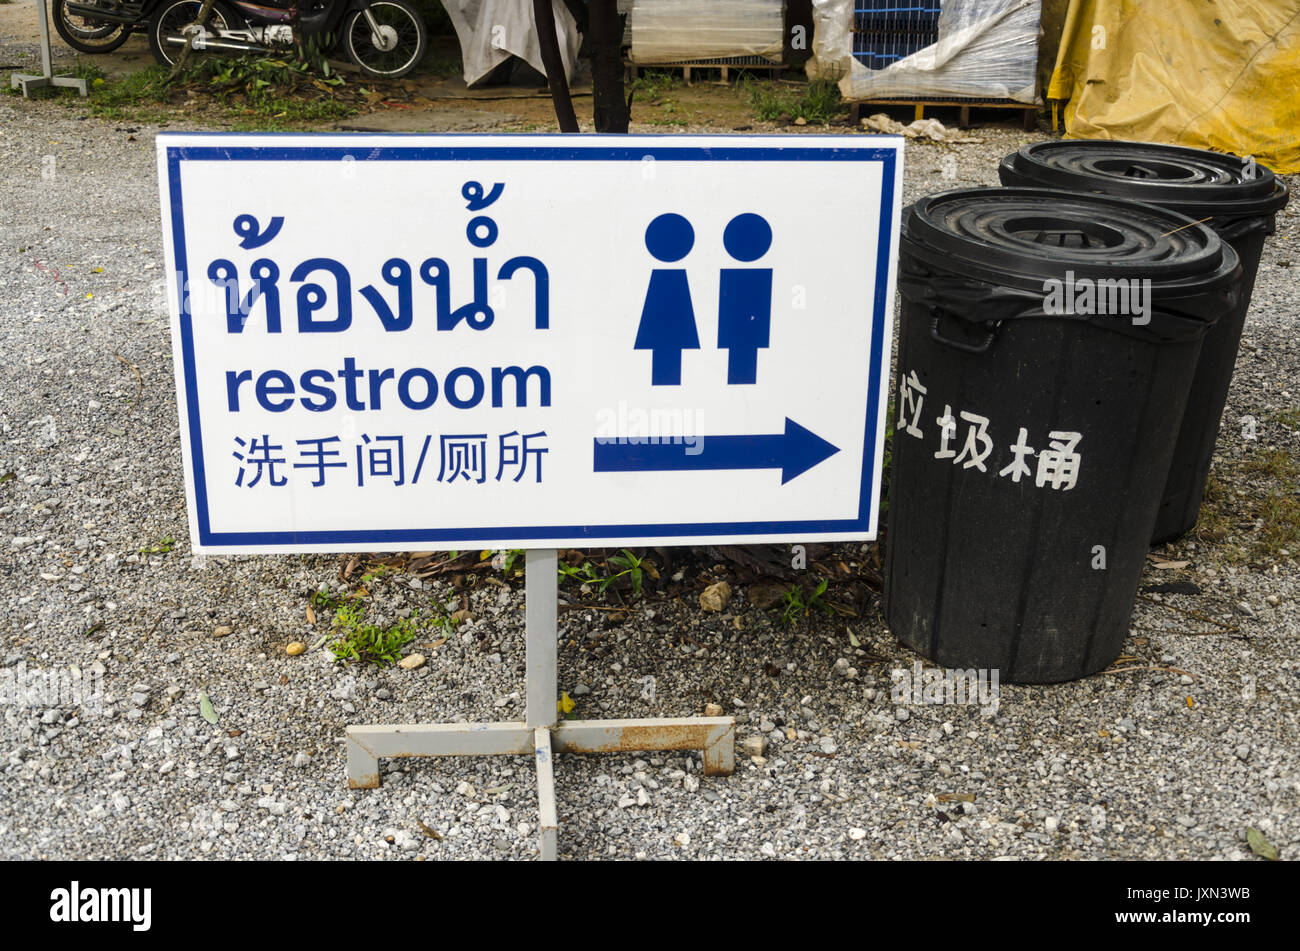 Chinese Toilet Sign Stock Photos & Chinese Toilet Sign ...